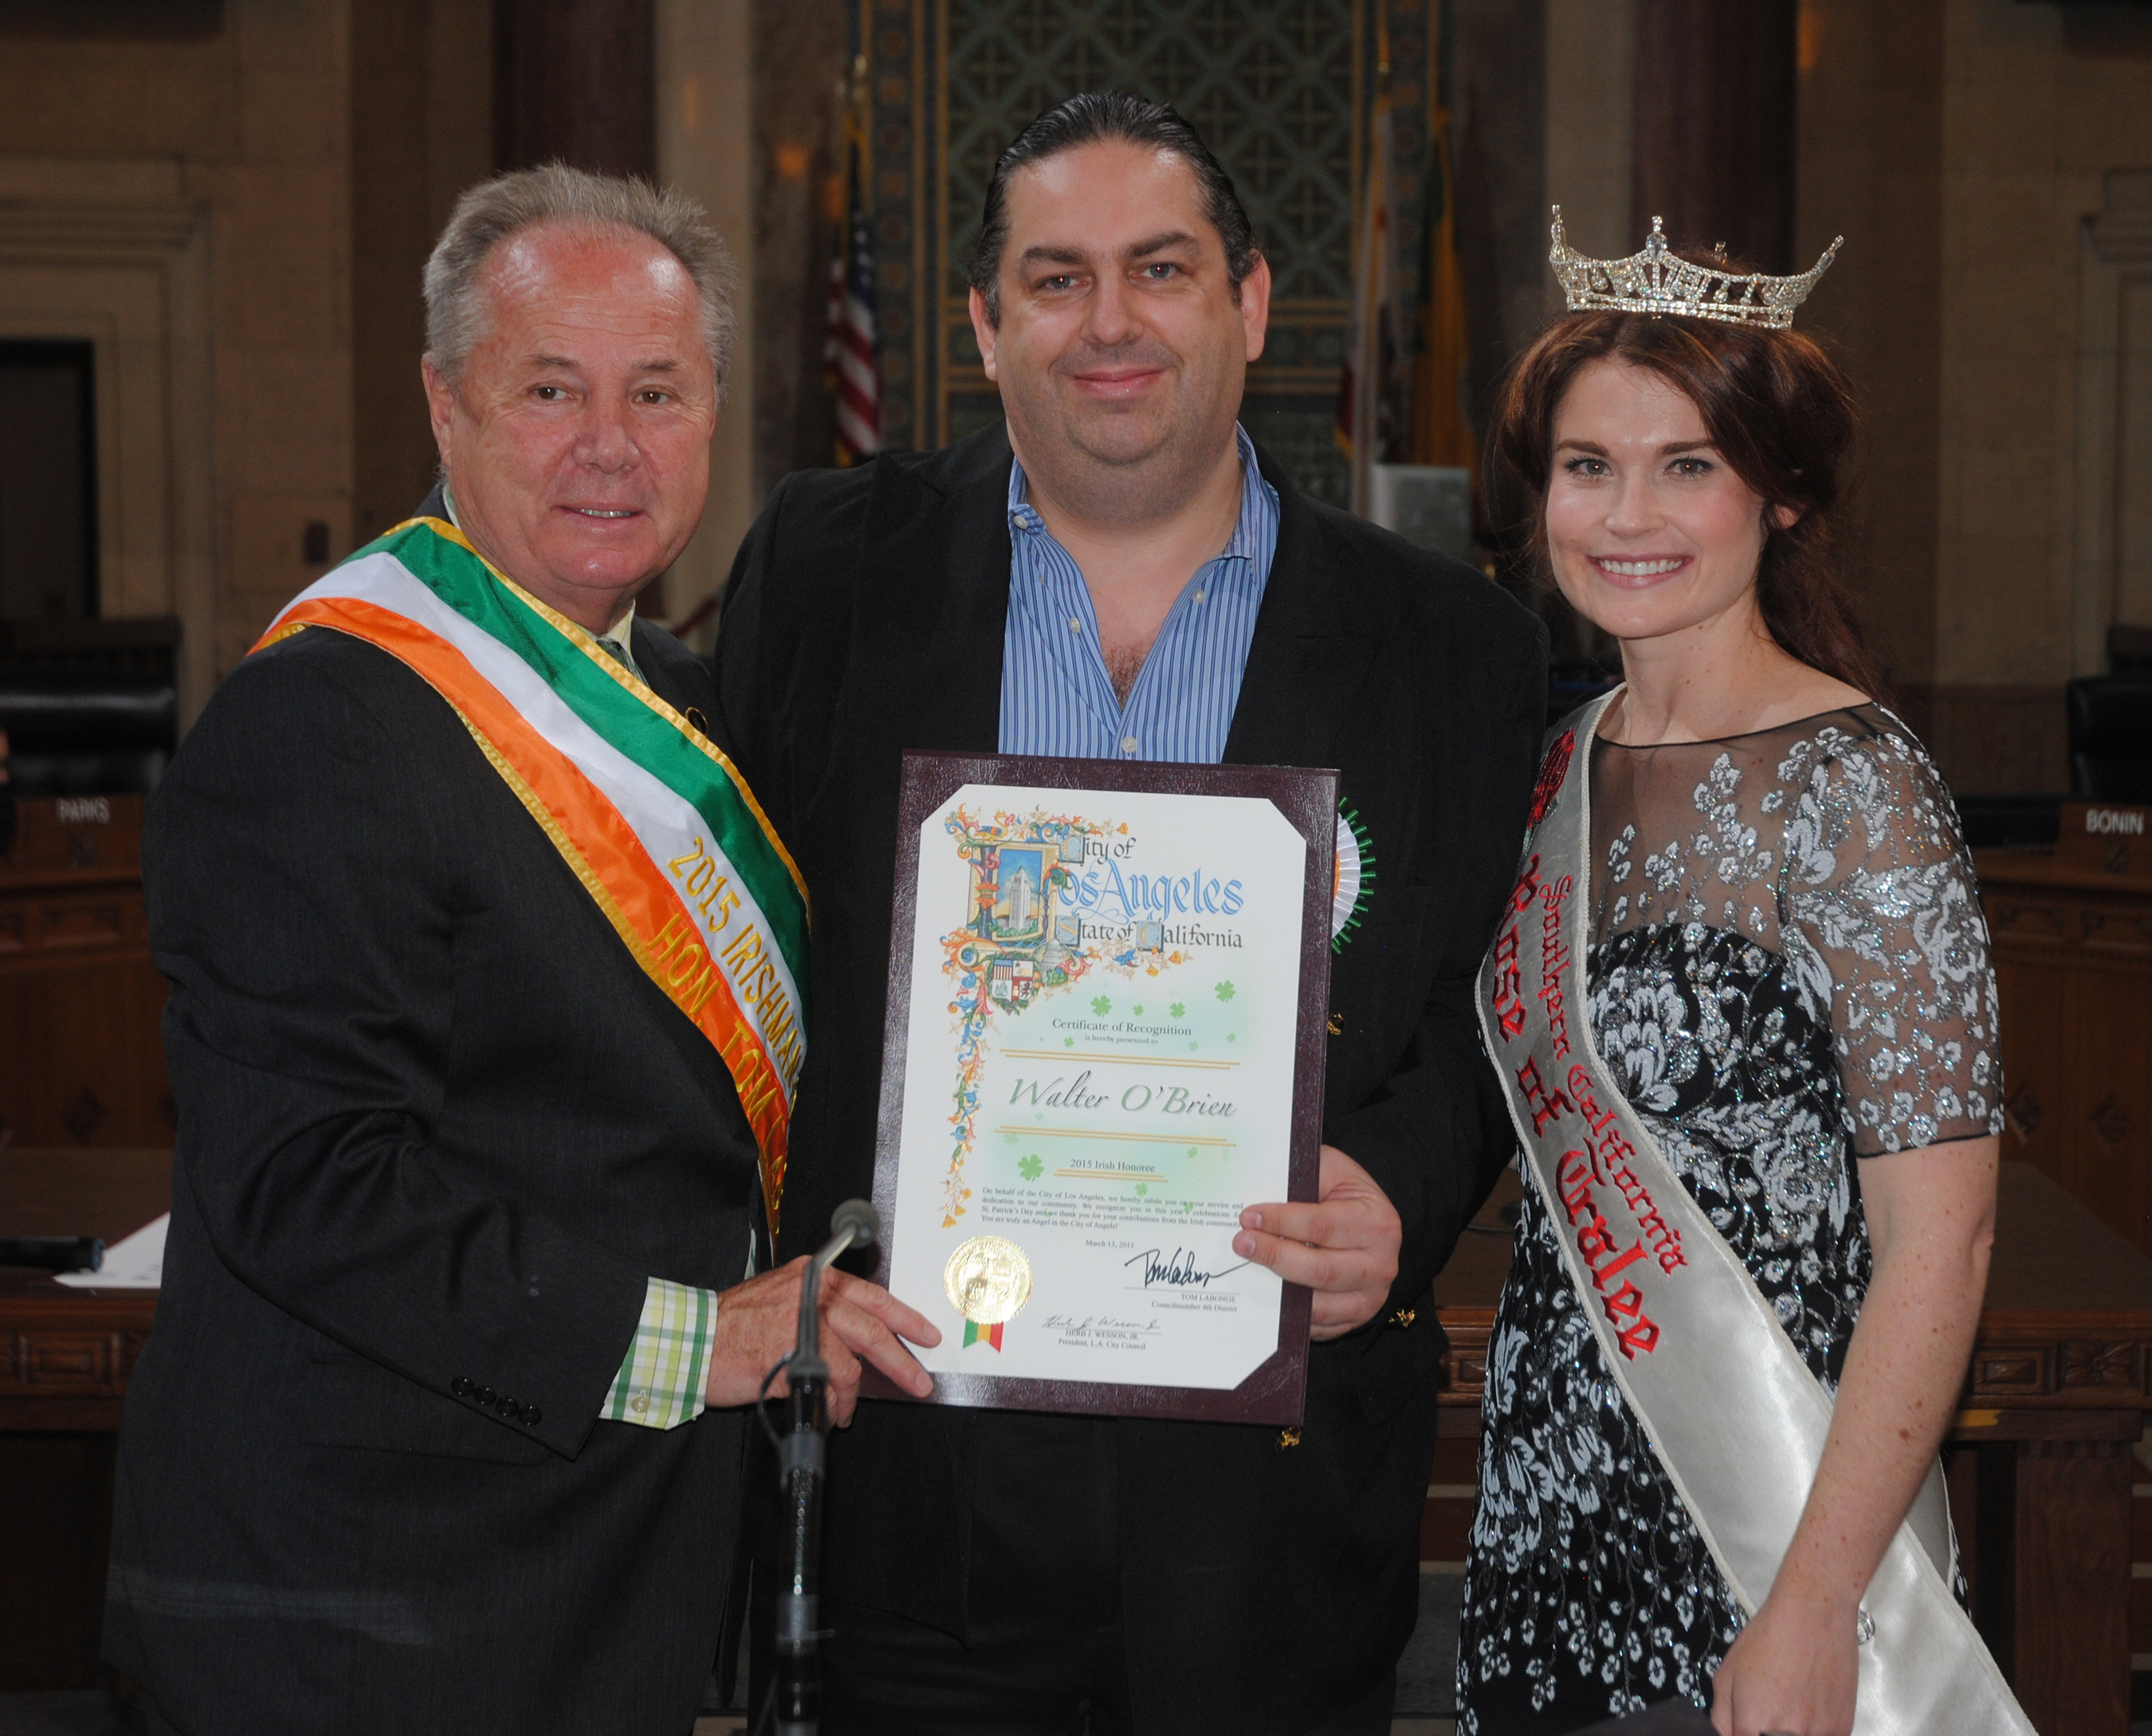 Walter O'Brien Nominated Los Angeles 'Irishman of the Year' 2015